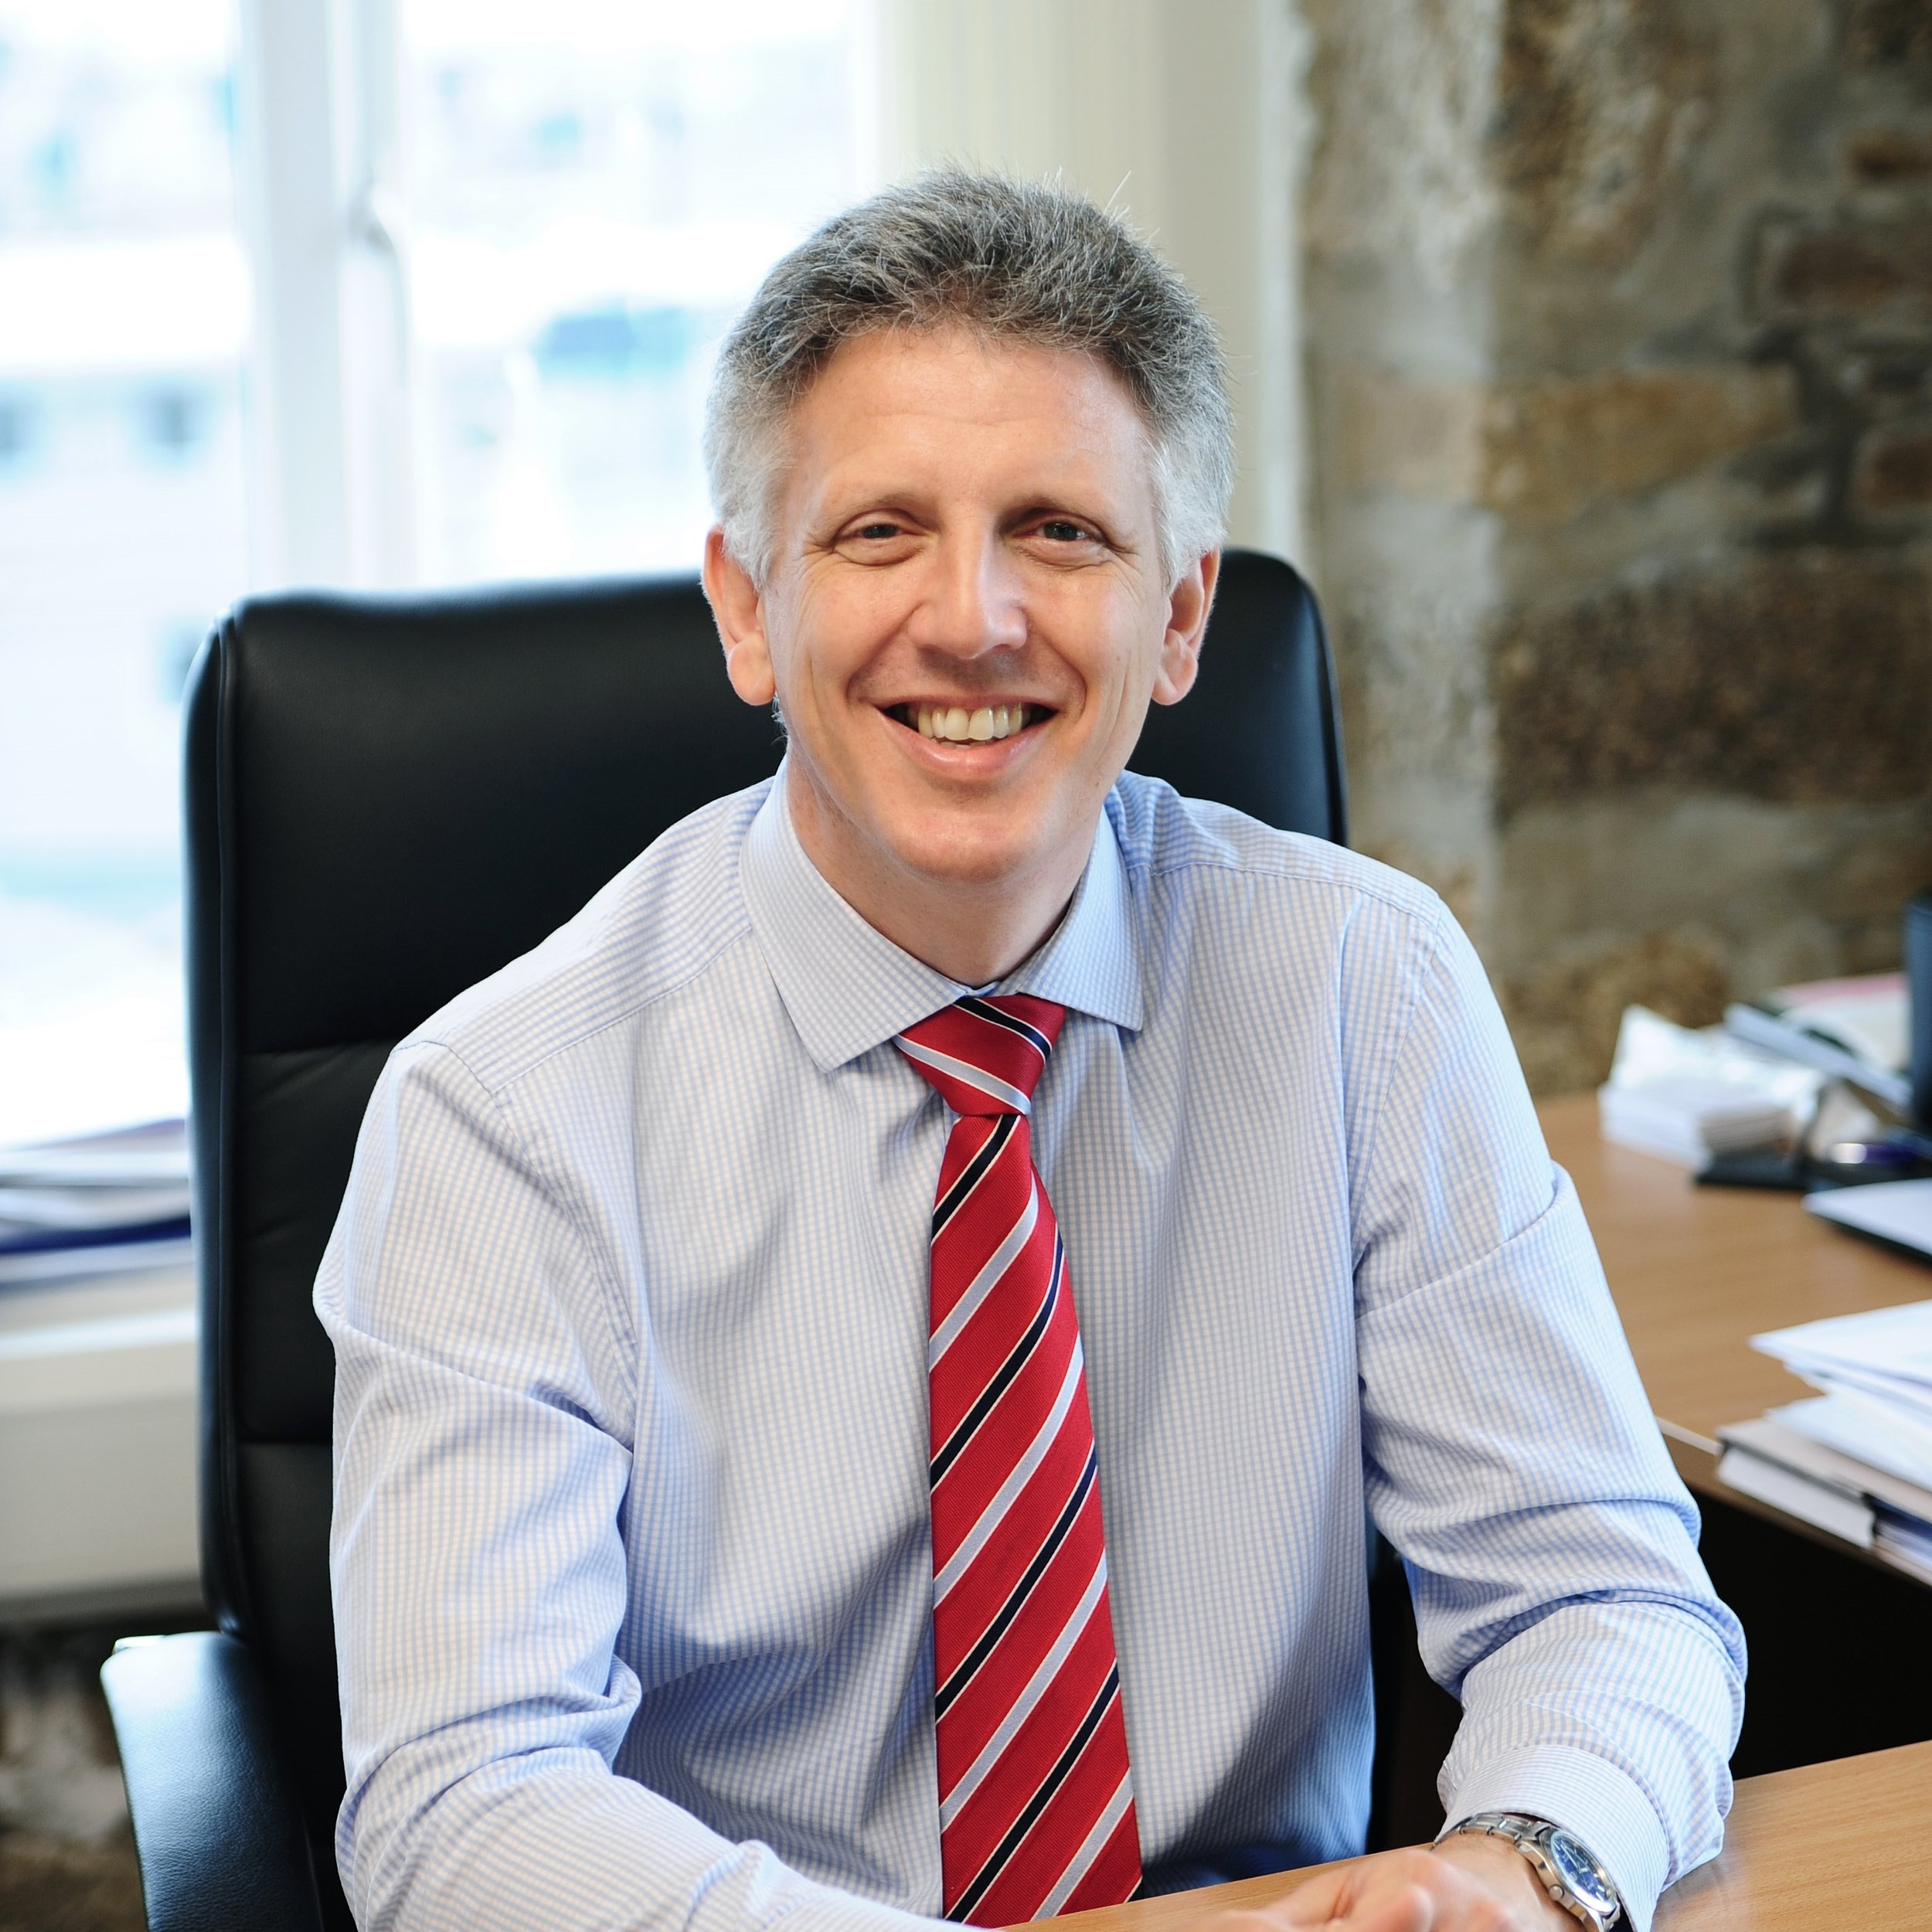 Isles of Scilly Steamship Company Chief Executive, Rob Goldsmith, has decided to step down after almost four years.